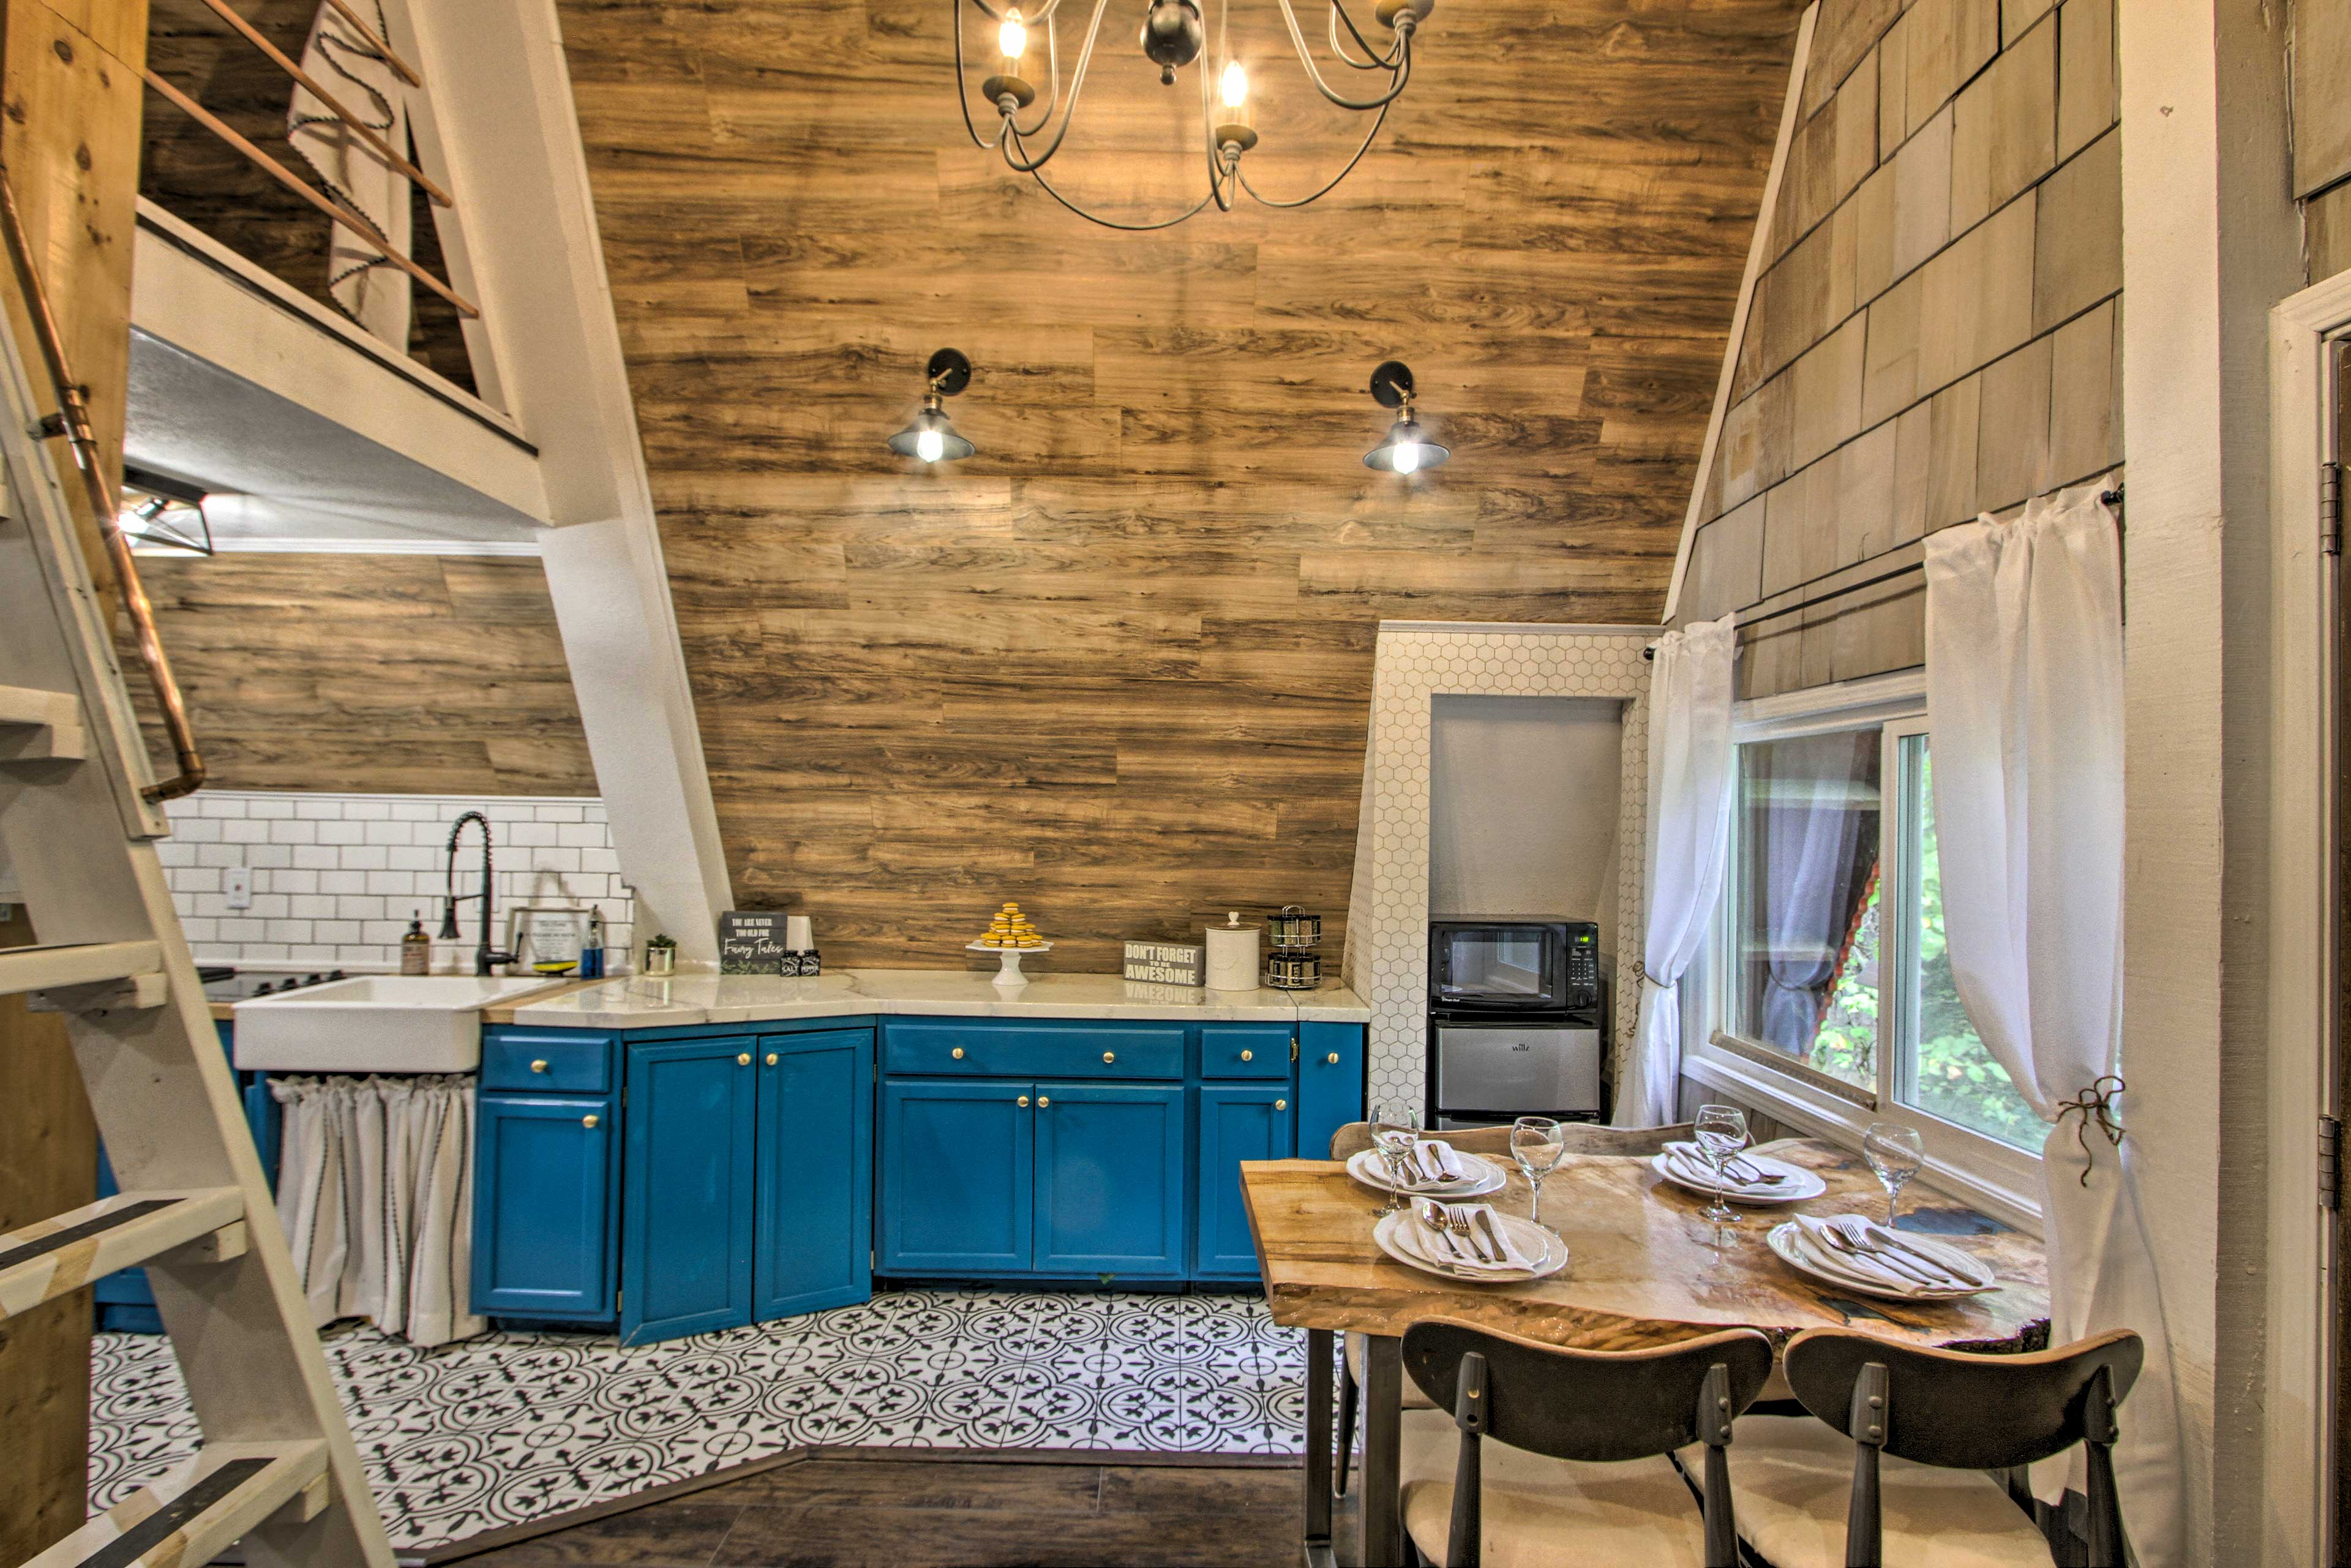 Host romantic dinner at the wood dining table.